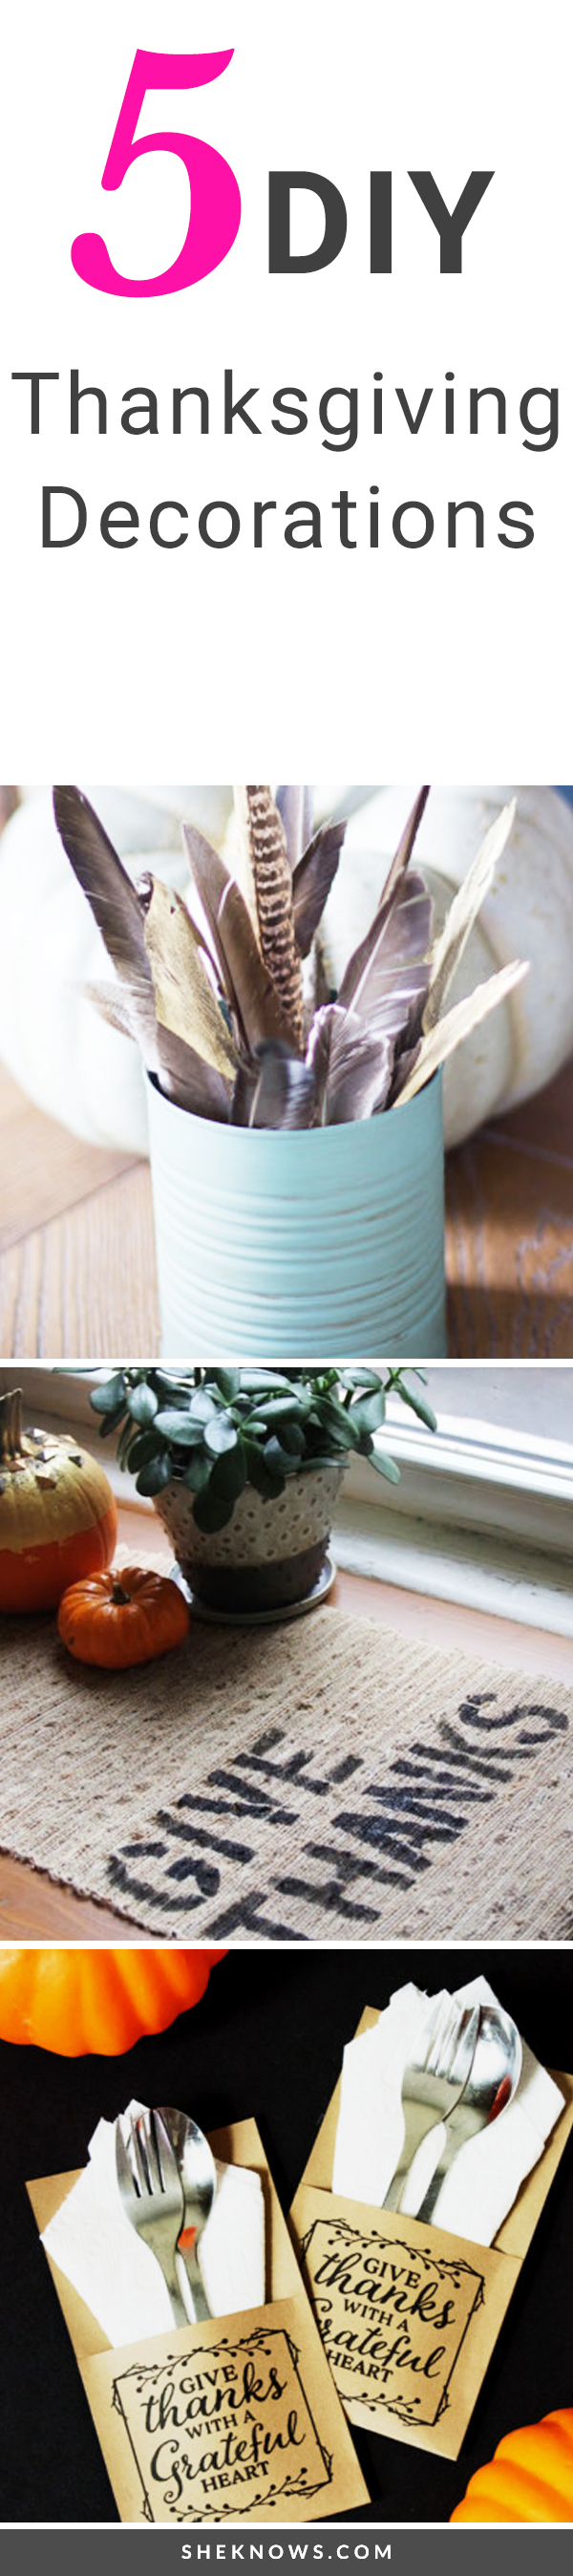 5 DIY decorating ideas to get your dinner table ready for Turkey Day